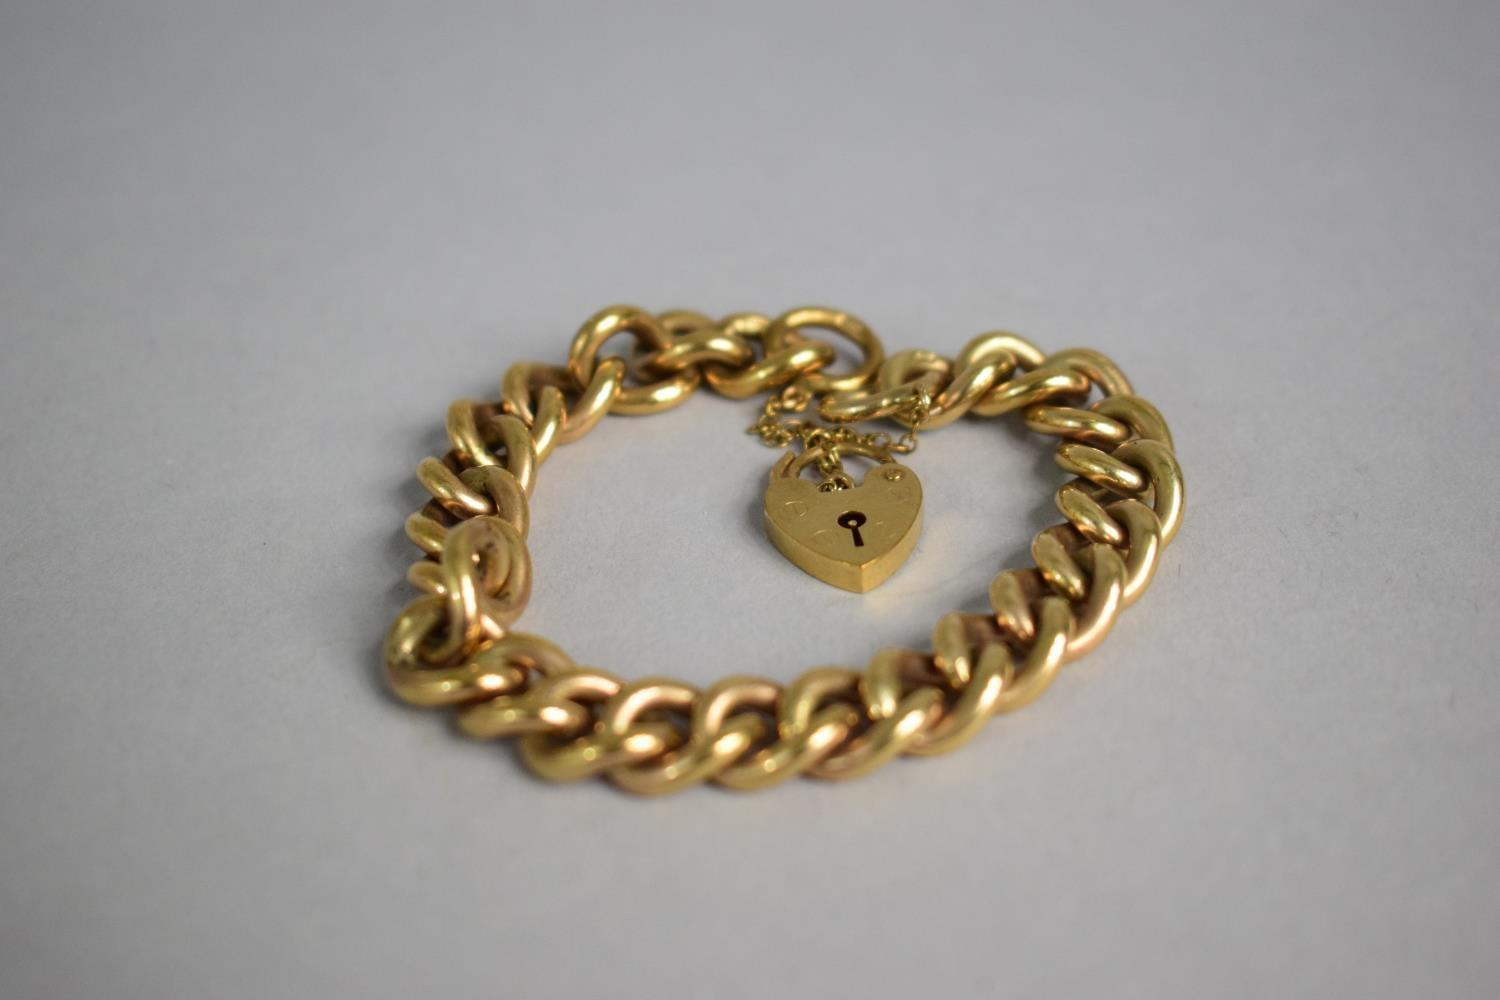 Lot 304 - A 9ct Yellow Gold Charm Bracelet, No Charms, 42.8gms